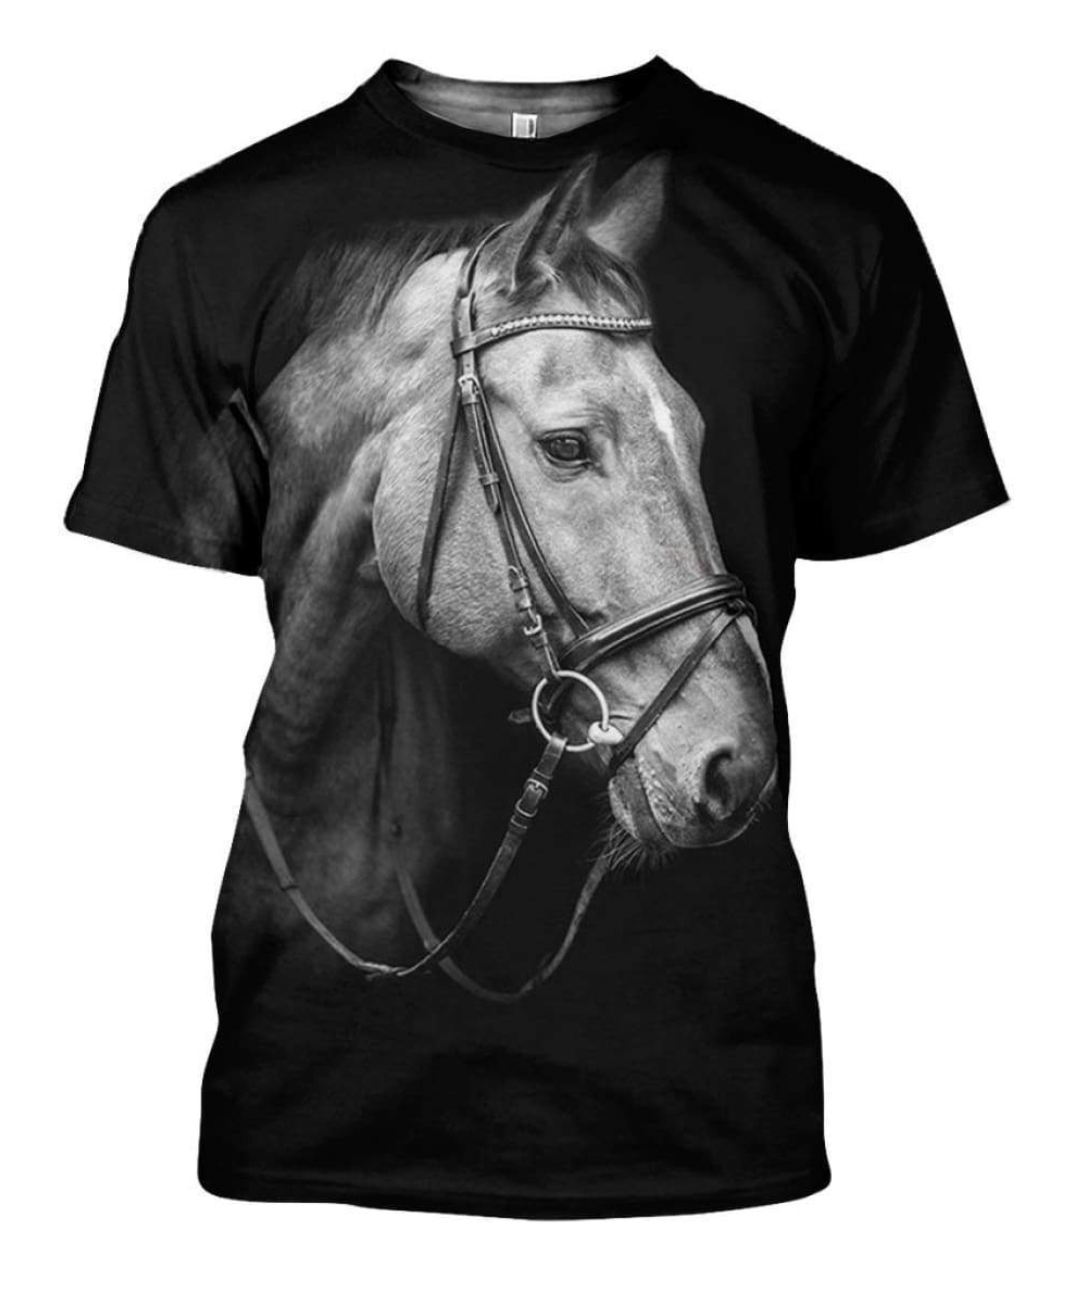 Champion 3D Horse Printed T-Shirt